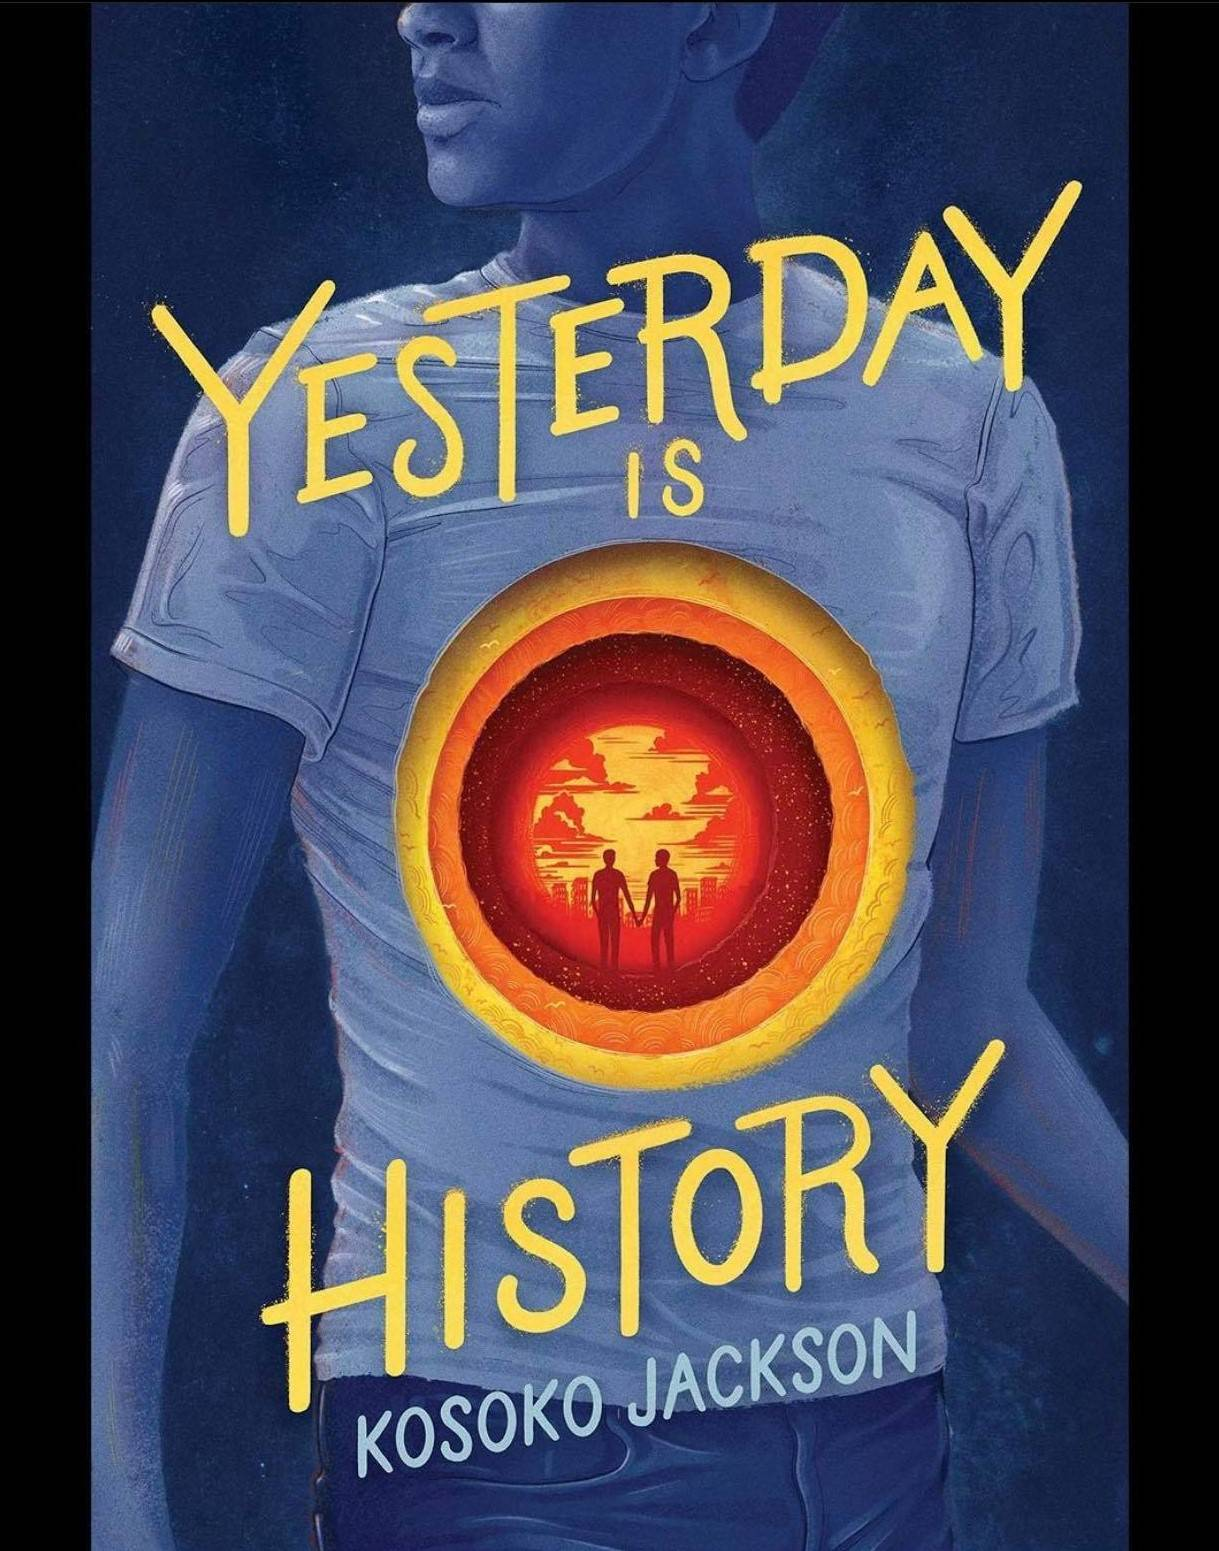 Yesterday is History by Kosoko Jackson is the February Book